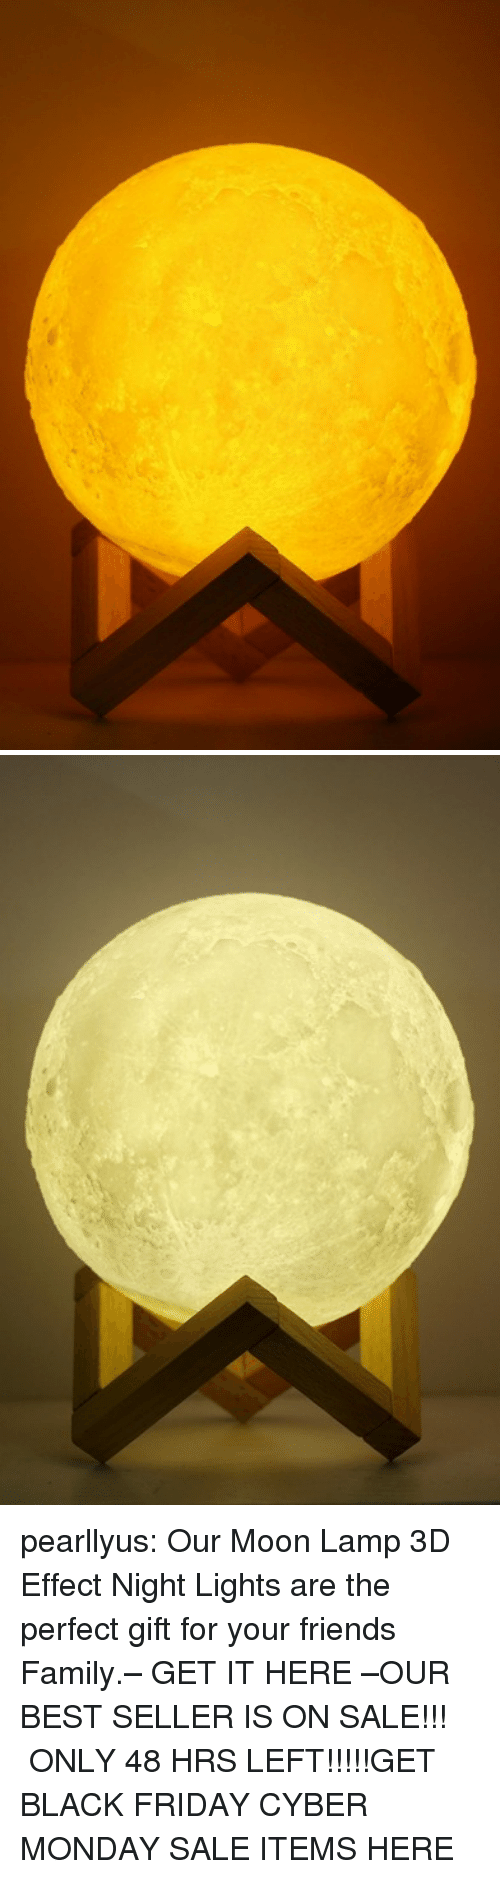 Black Friday, Family, and Friday: pearllyus:  Our Moon Lamp 3D Effect Night Lights are the perfect gift for your friends  Family.– GET IT HERE –OUR BEST SELLER IS ON SALE!!! ONLY 48 HRS LEFT!!!!!GET BLACK FRIDAY CYBER MONDAY SALE ITEMS HERE